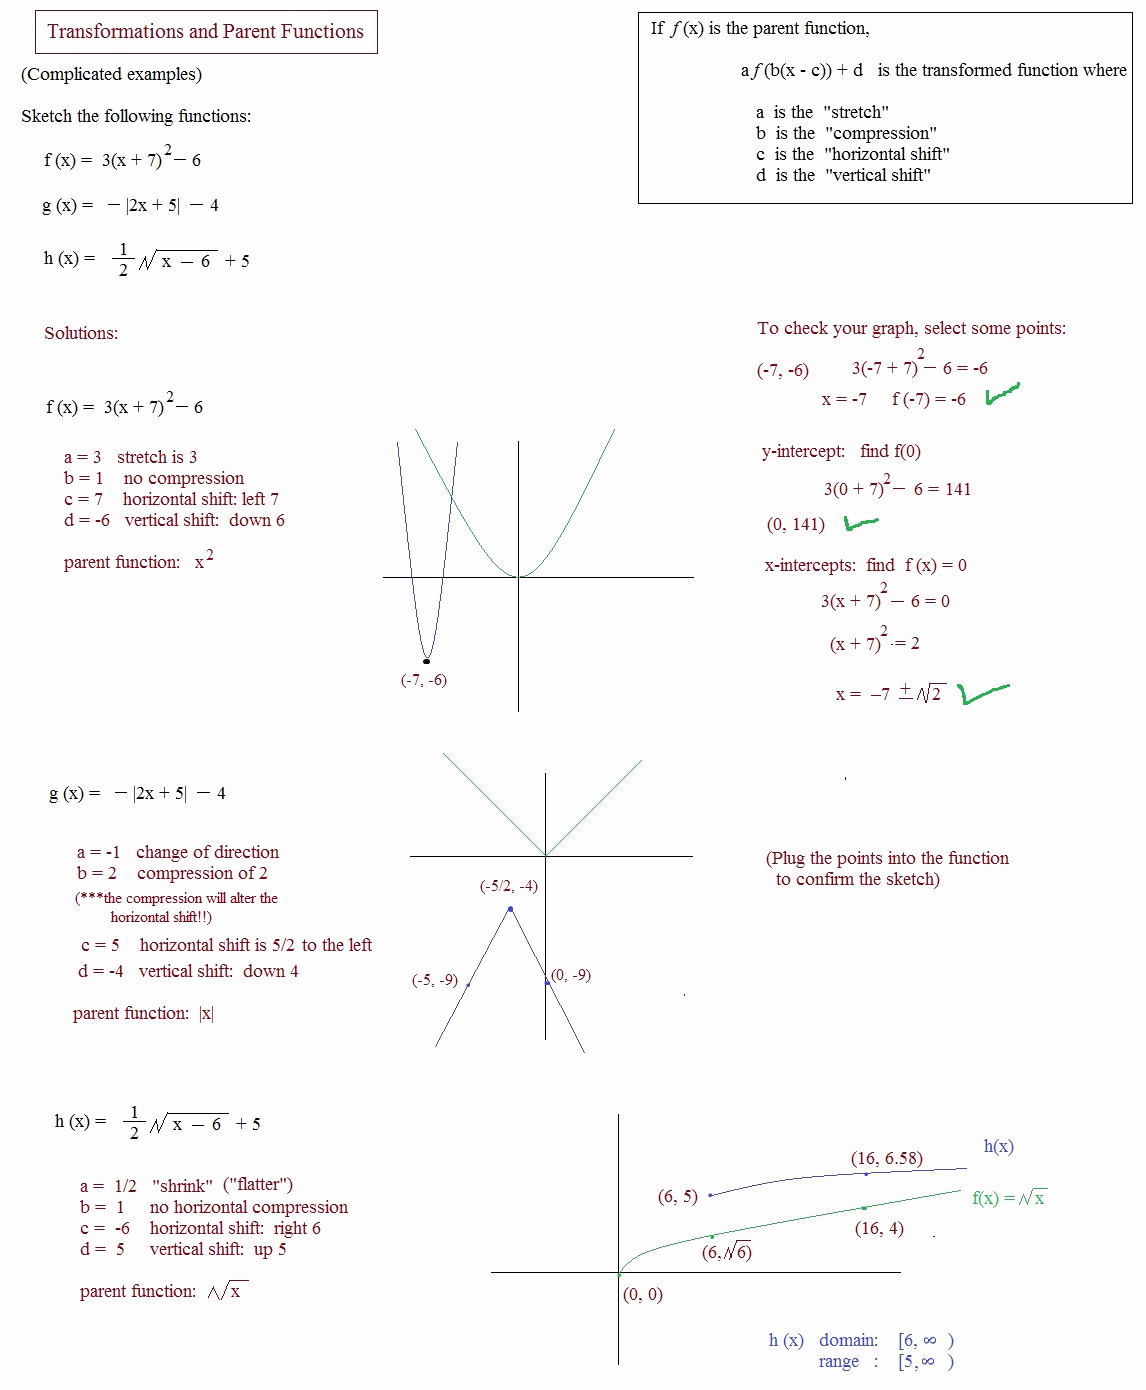 Transformations Of Graphs Worksheet Inspirational Math Plane Graphing I Transformations & Parent Functions